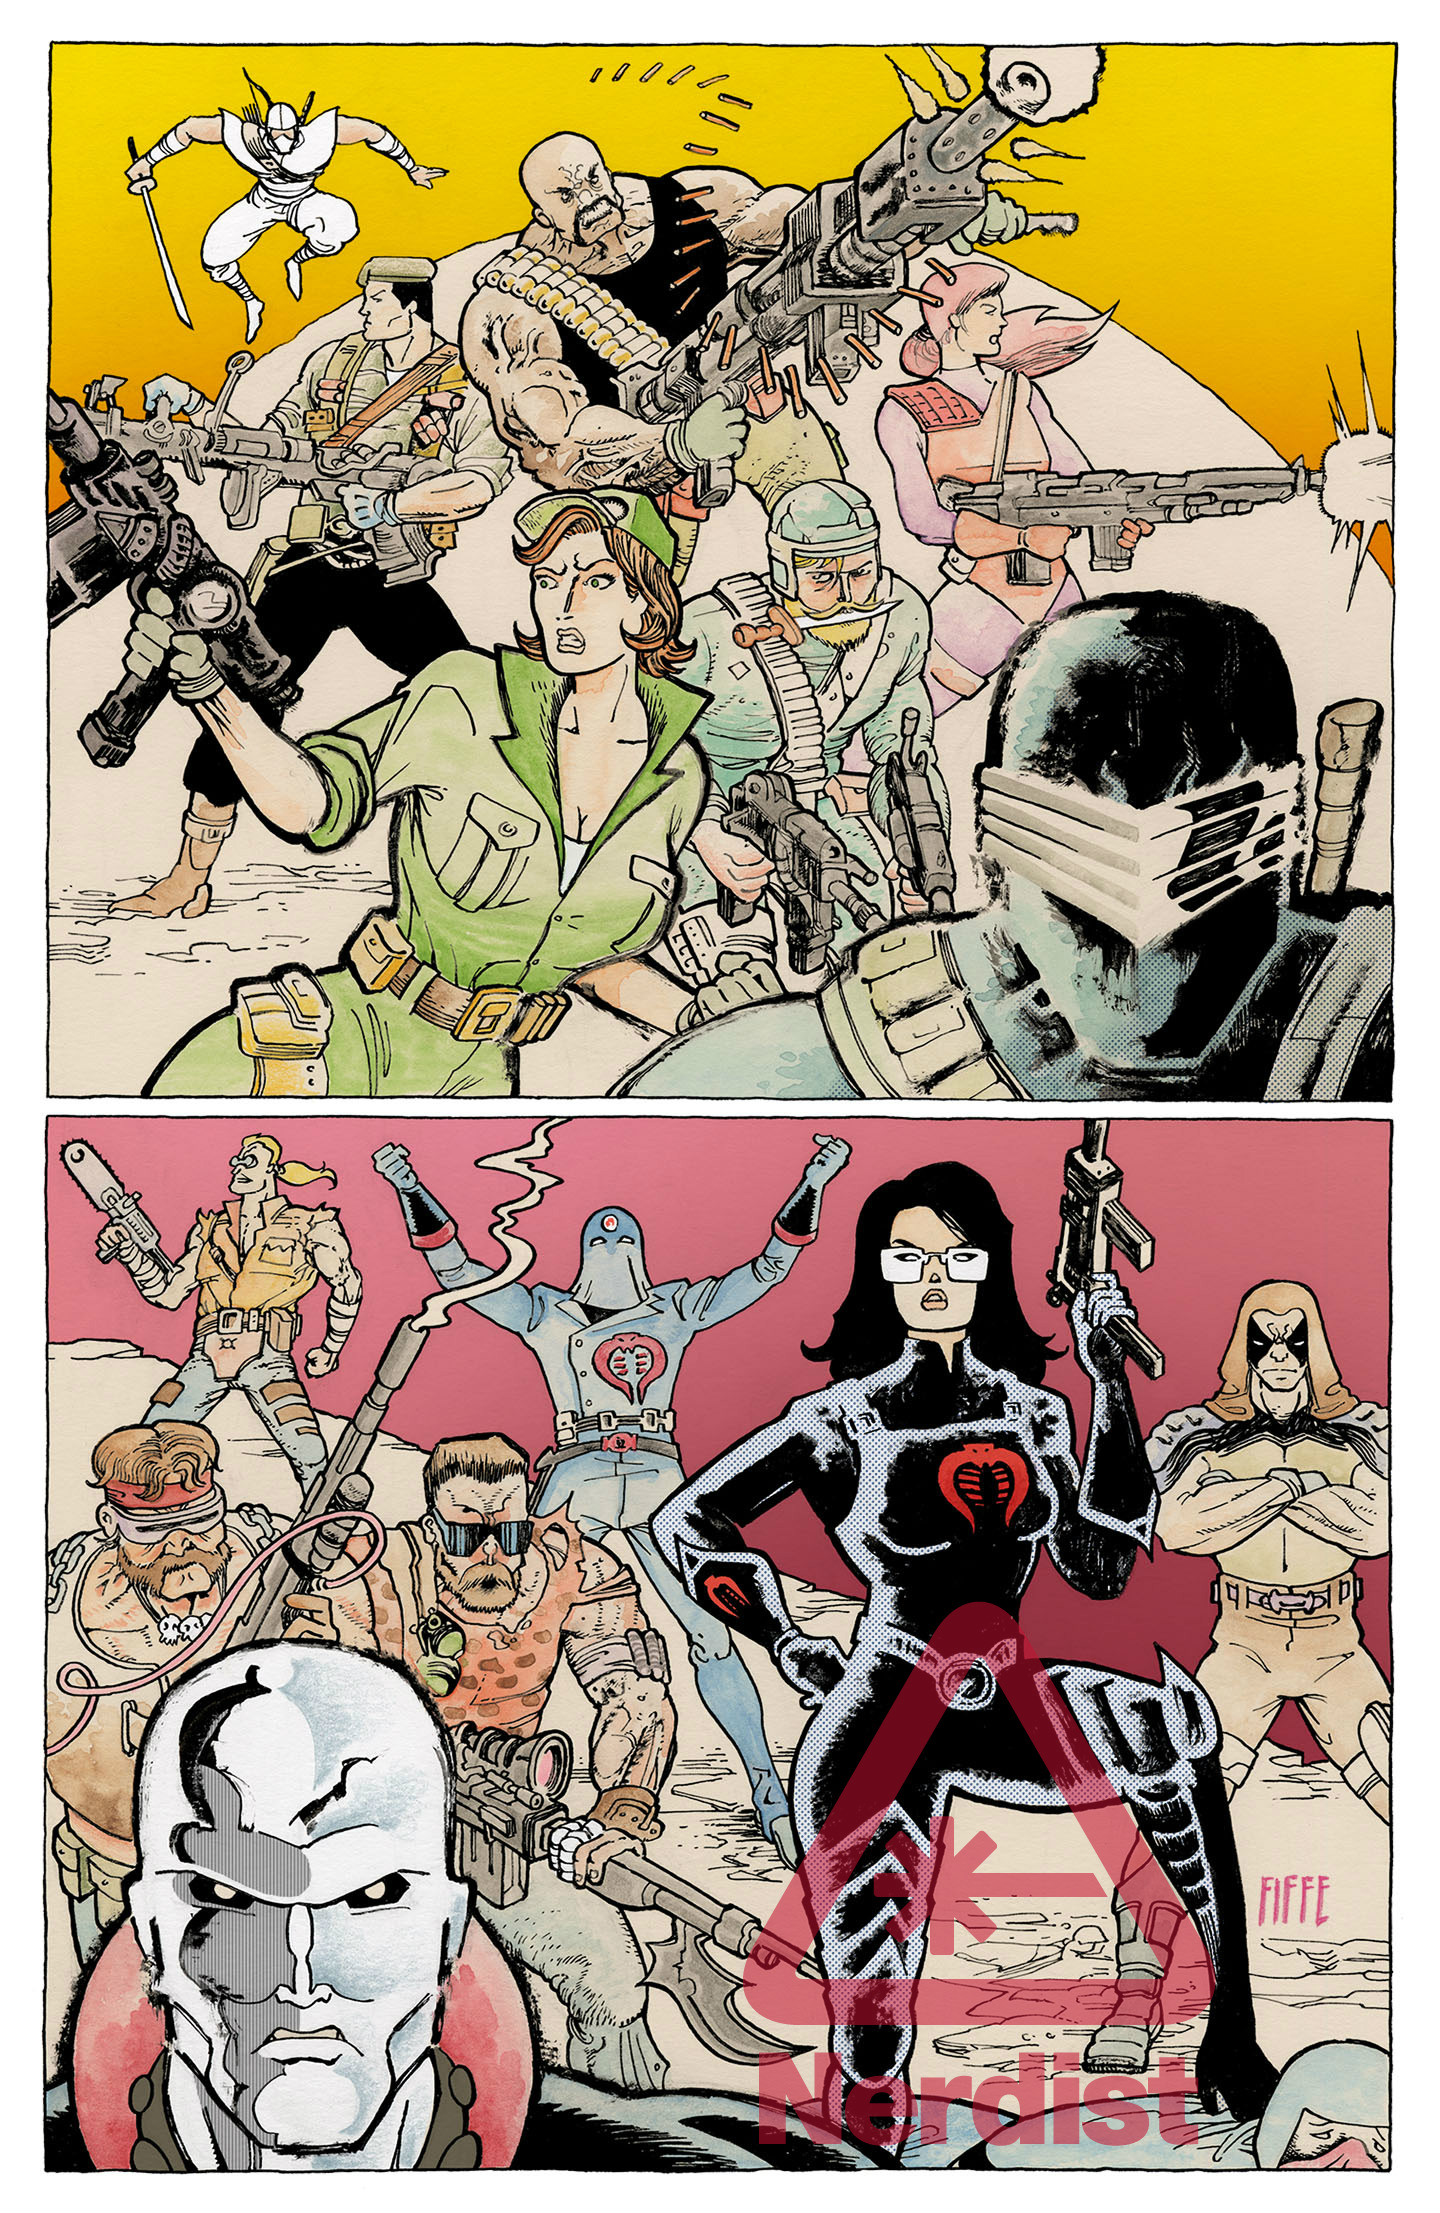 Michel Fiffe To Tackle G.I. JOE, Freedom With New IDW